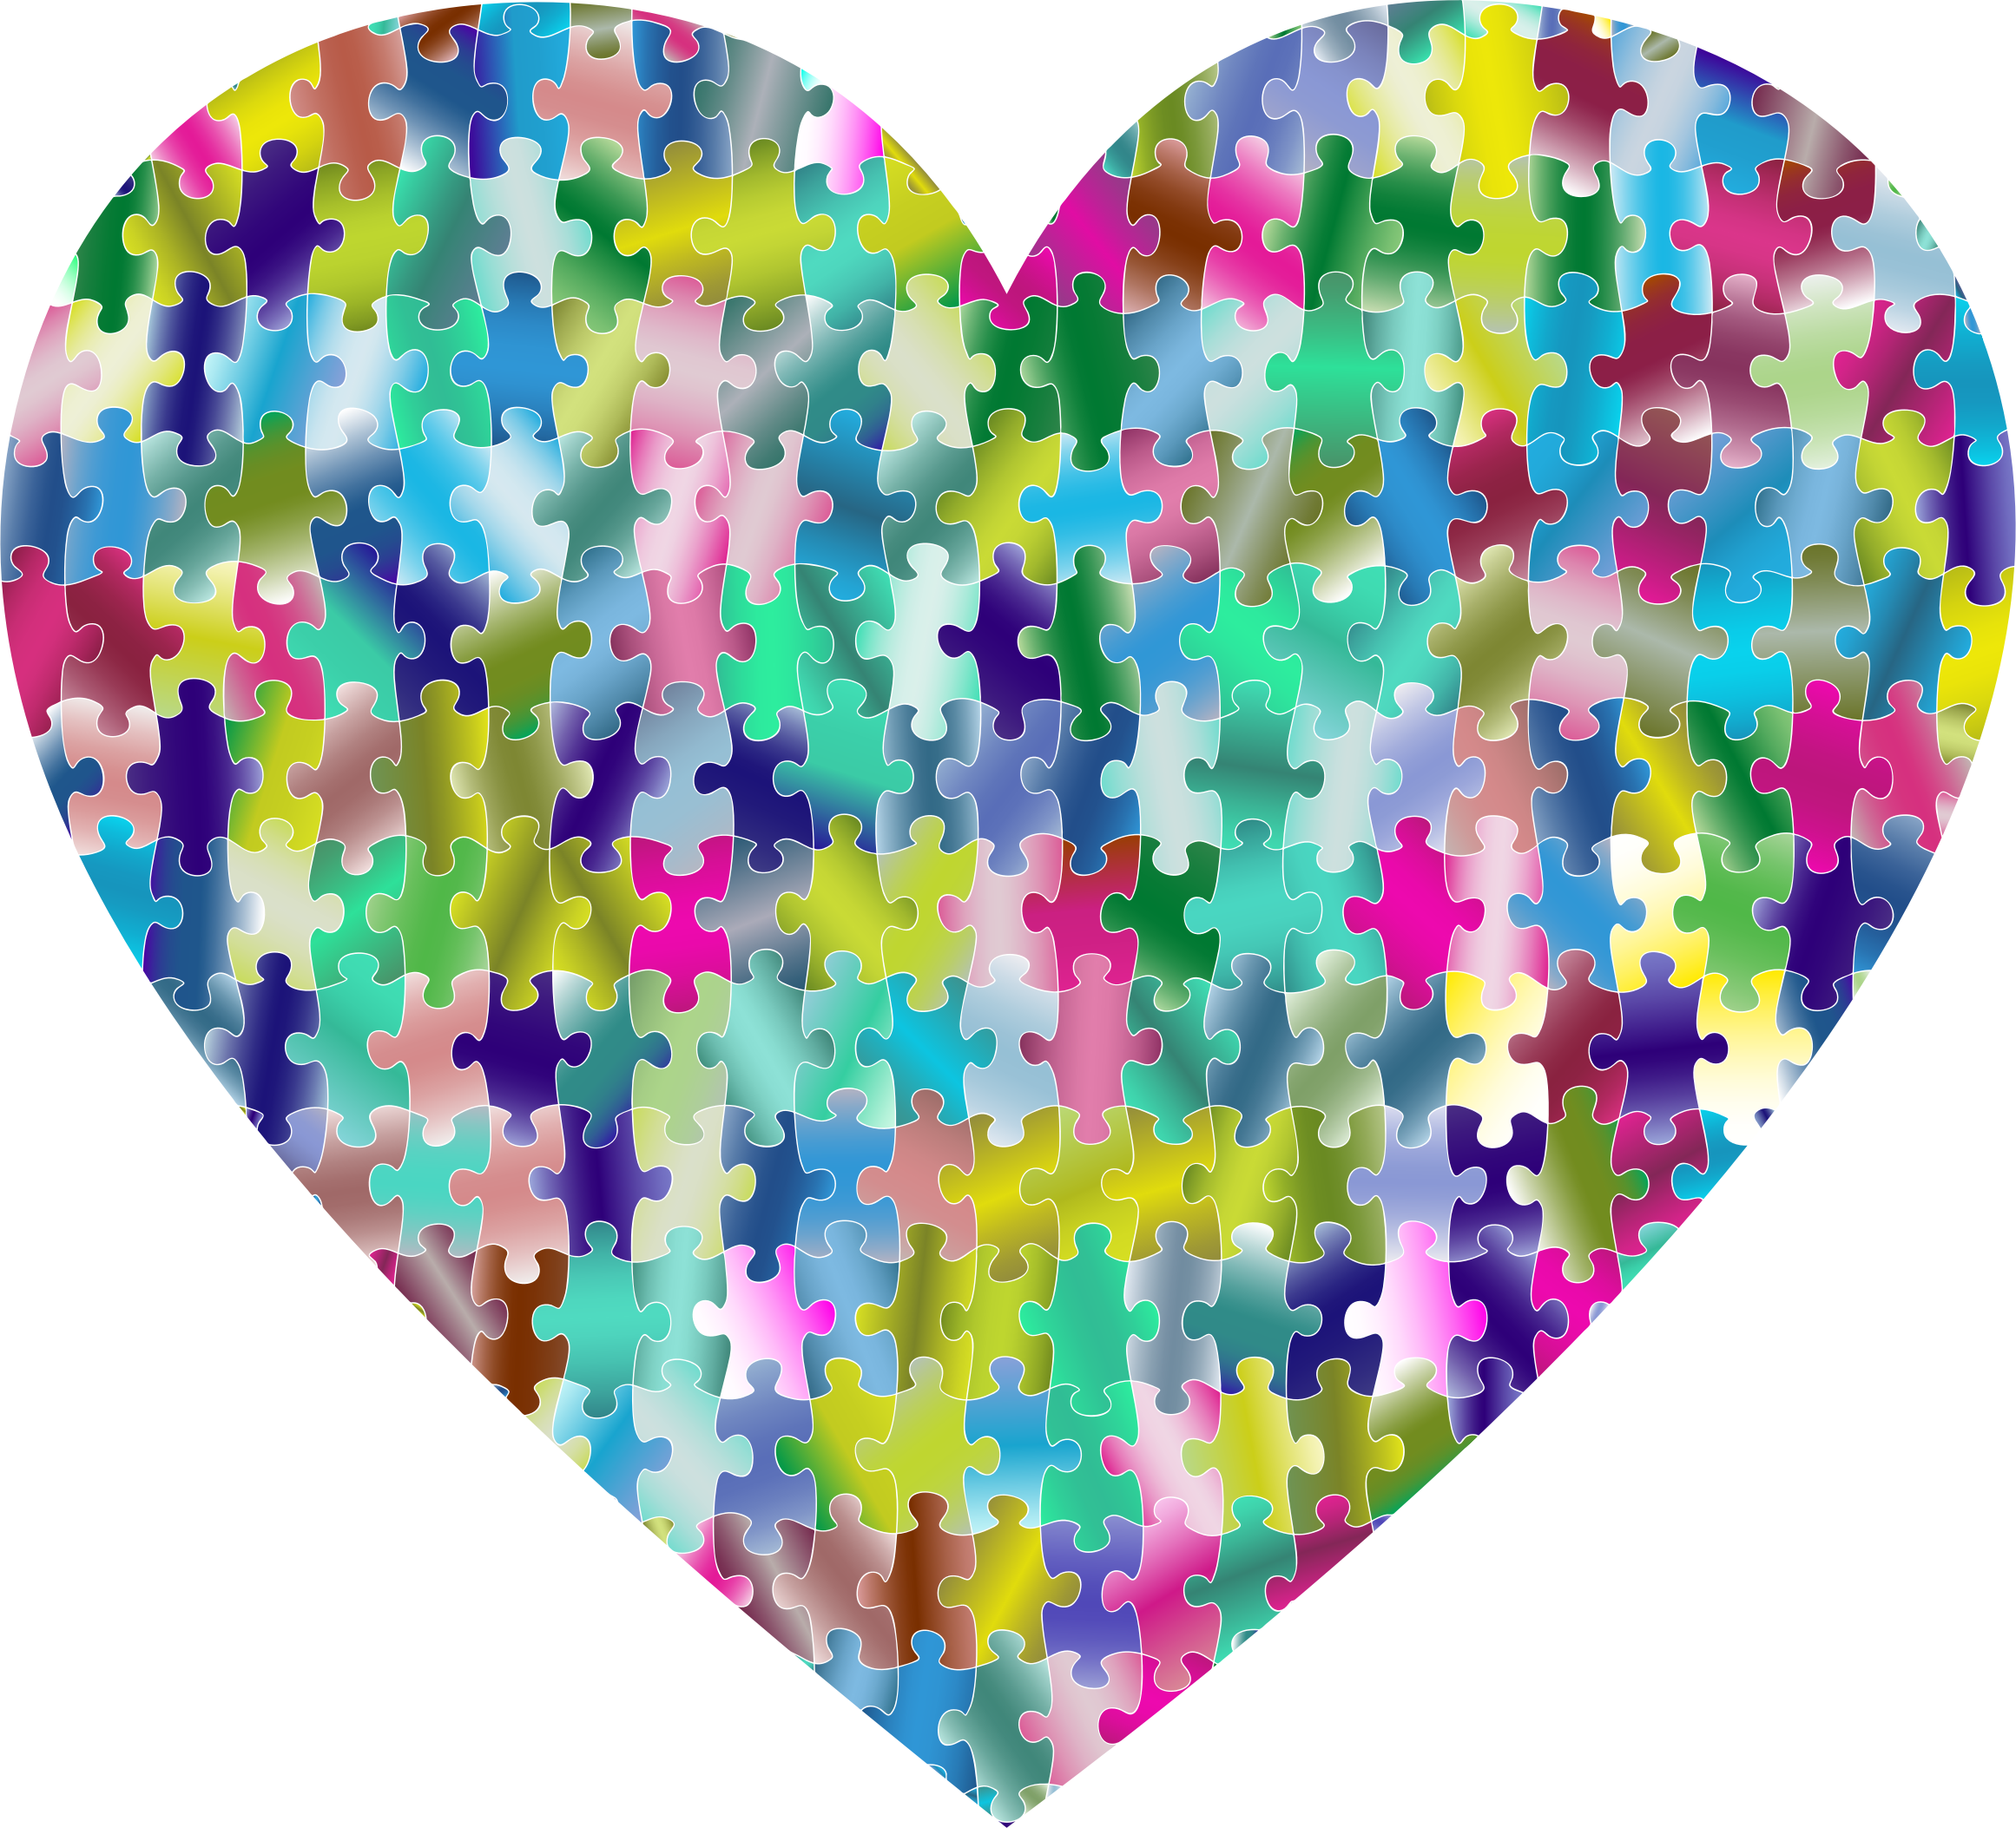 Colorful Puzzle Heart 6 by GDJ